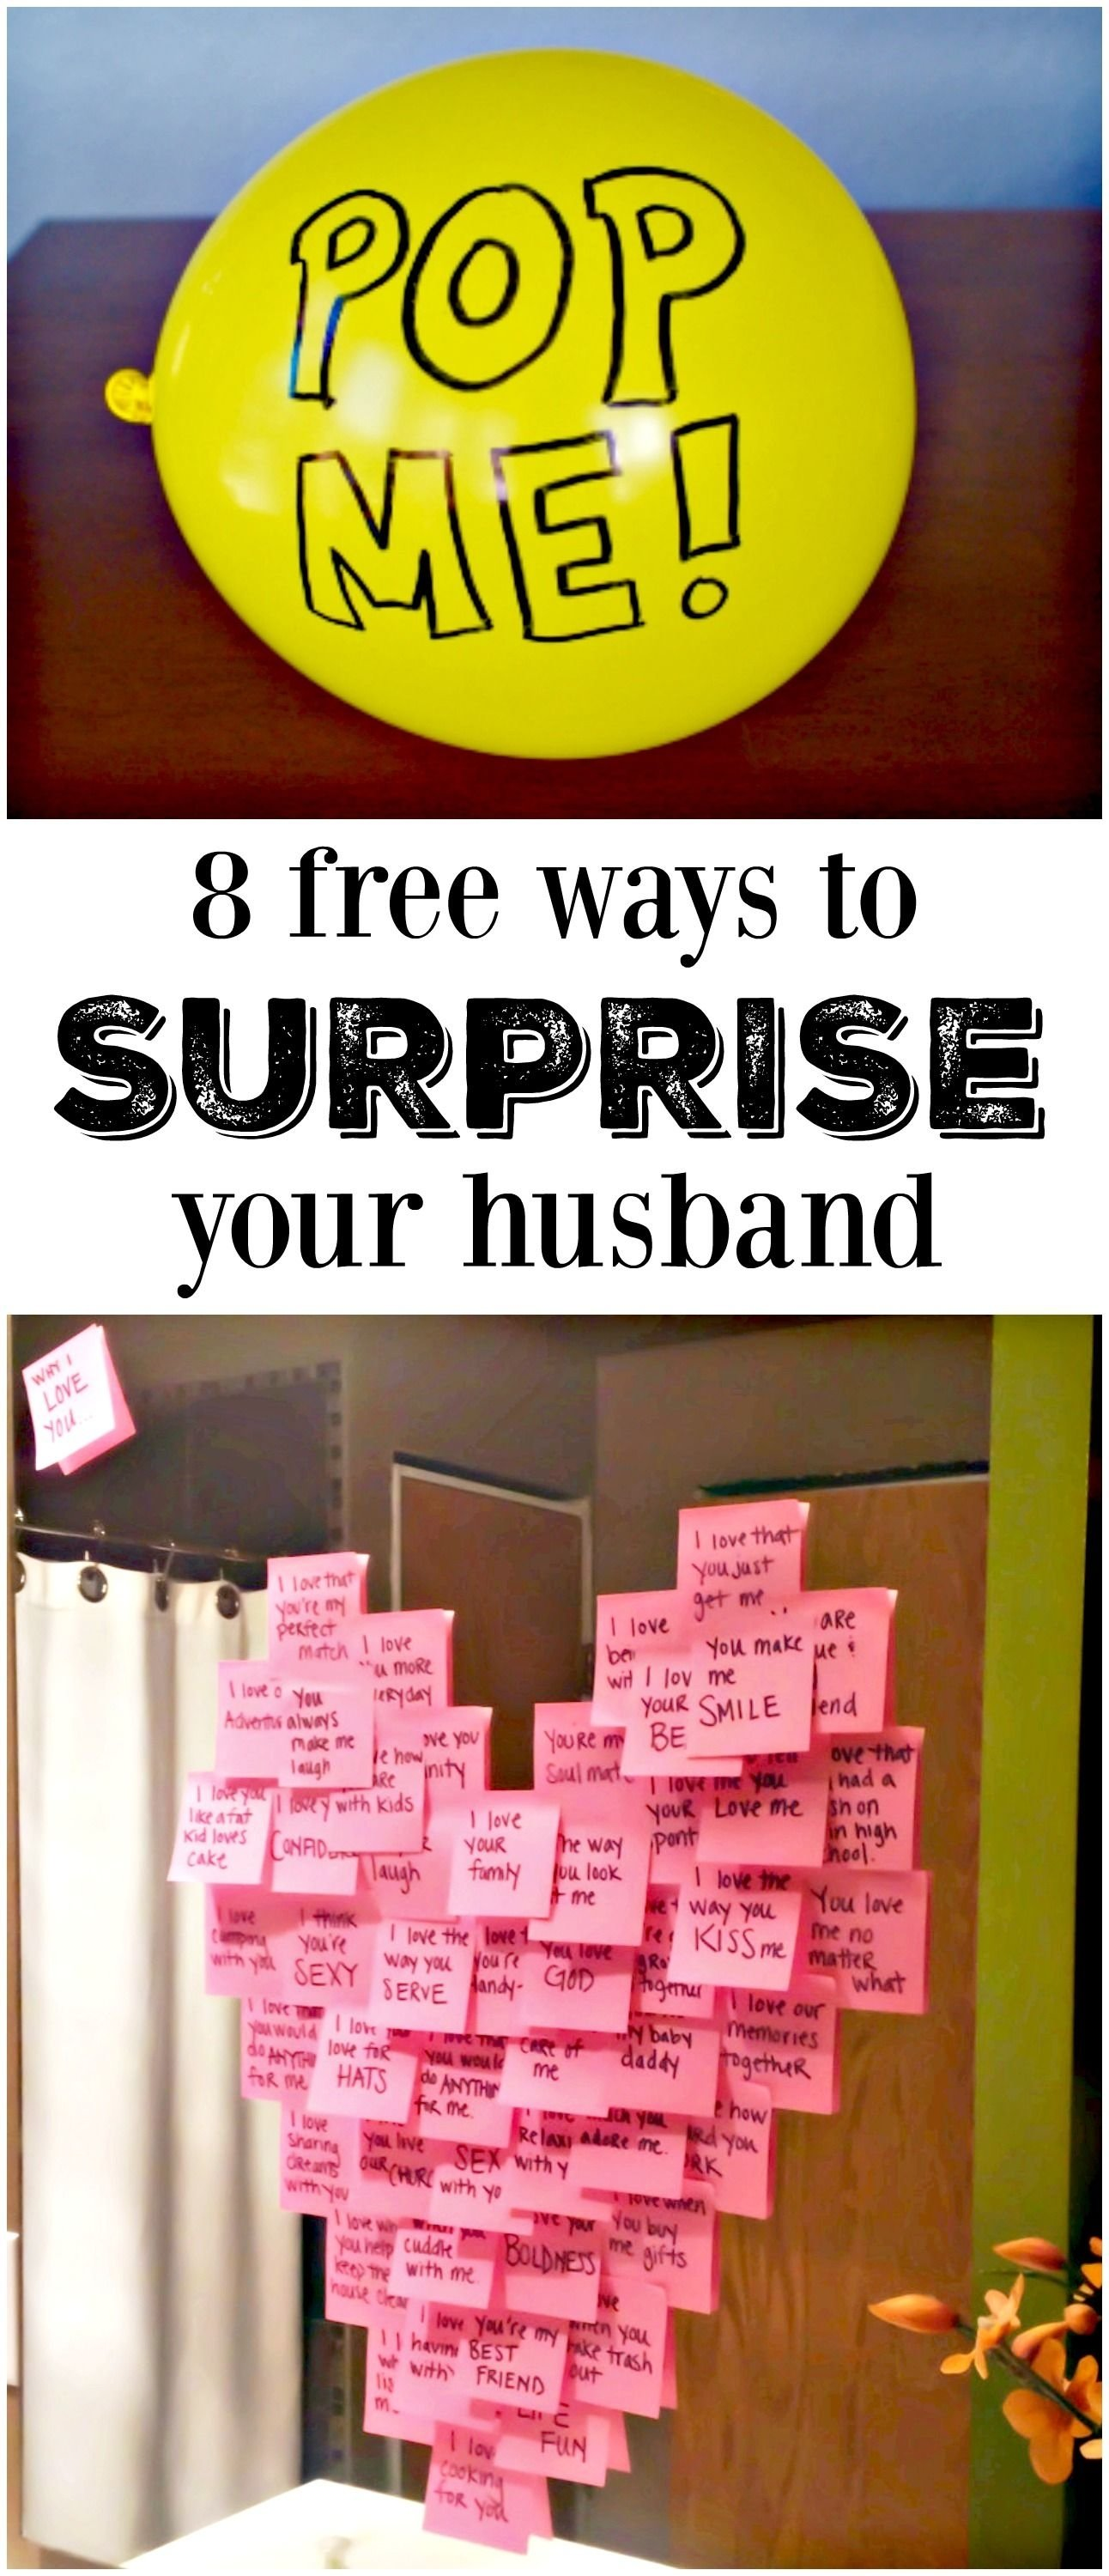 10 Beautiful Birthday Ideas For Your Wife 8 meaningful ways to make his day free gift and relationships 2 2020